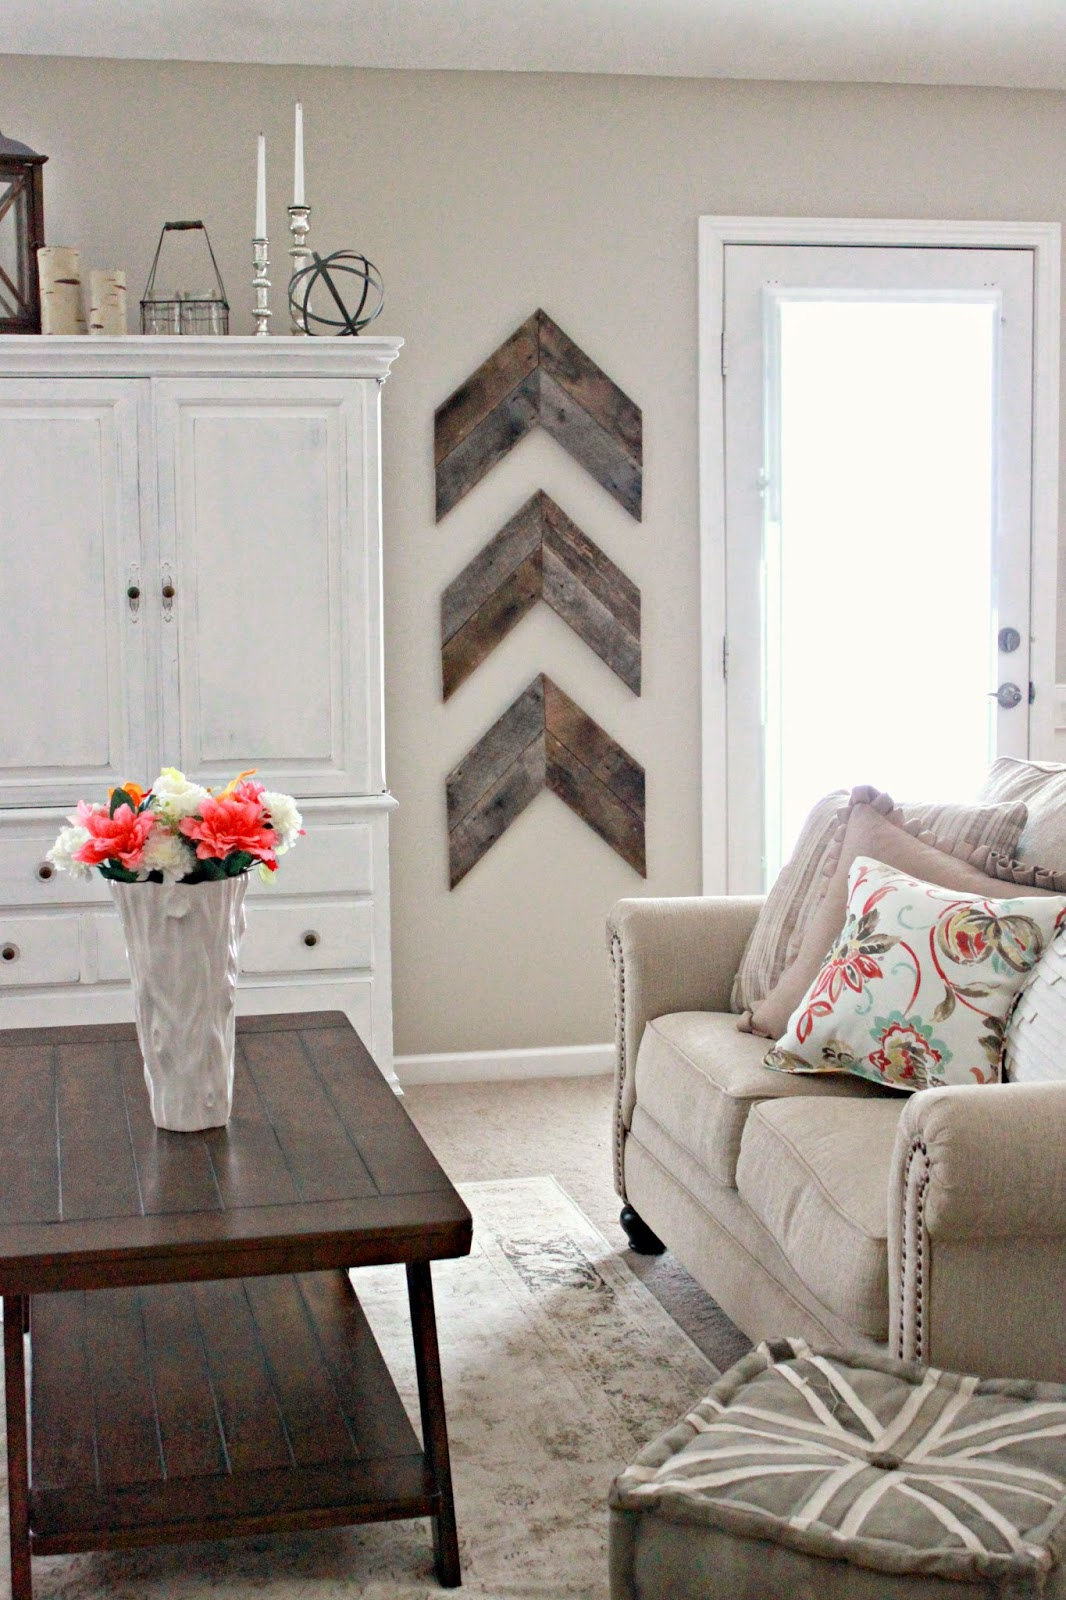 15 Striking Ways To Decorate With Arrows: living room art